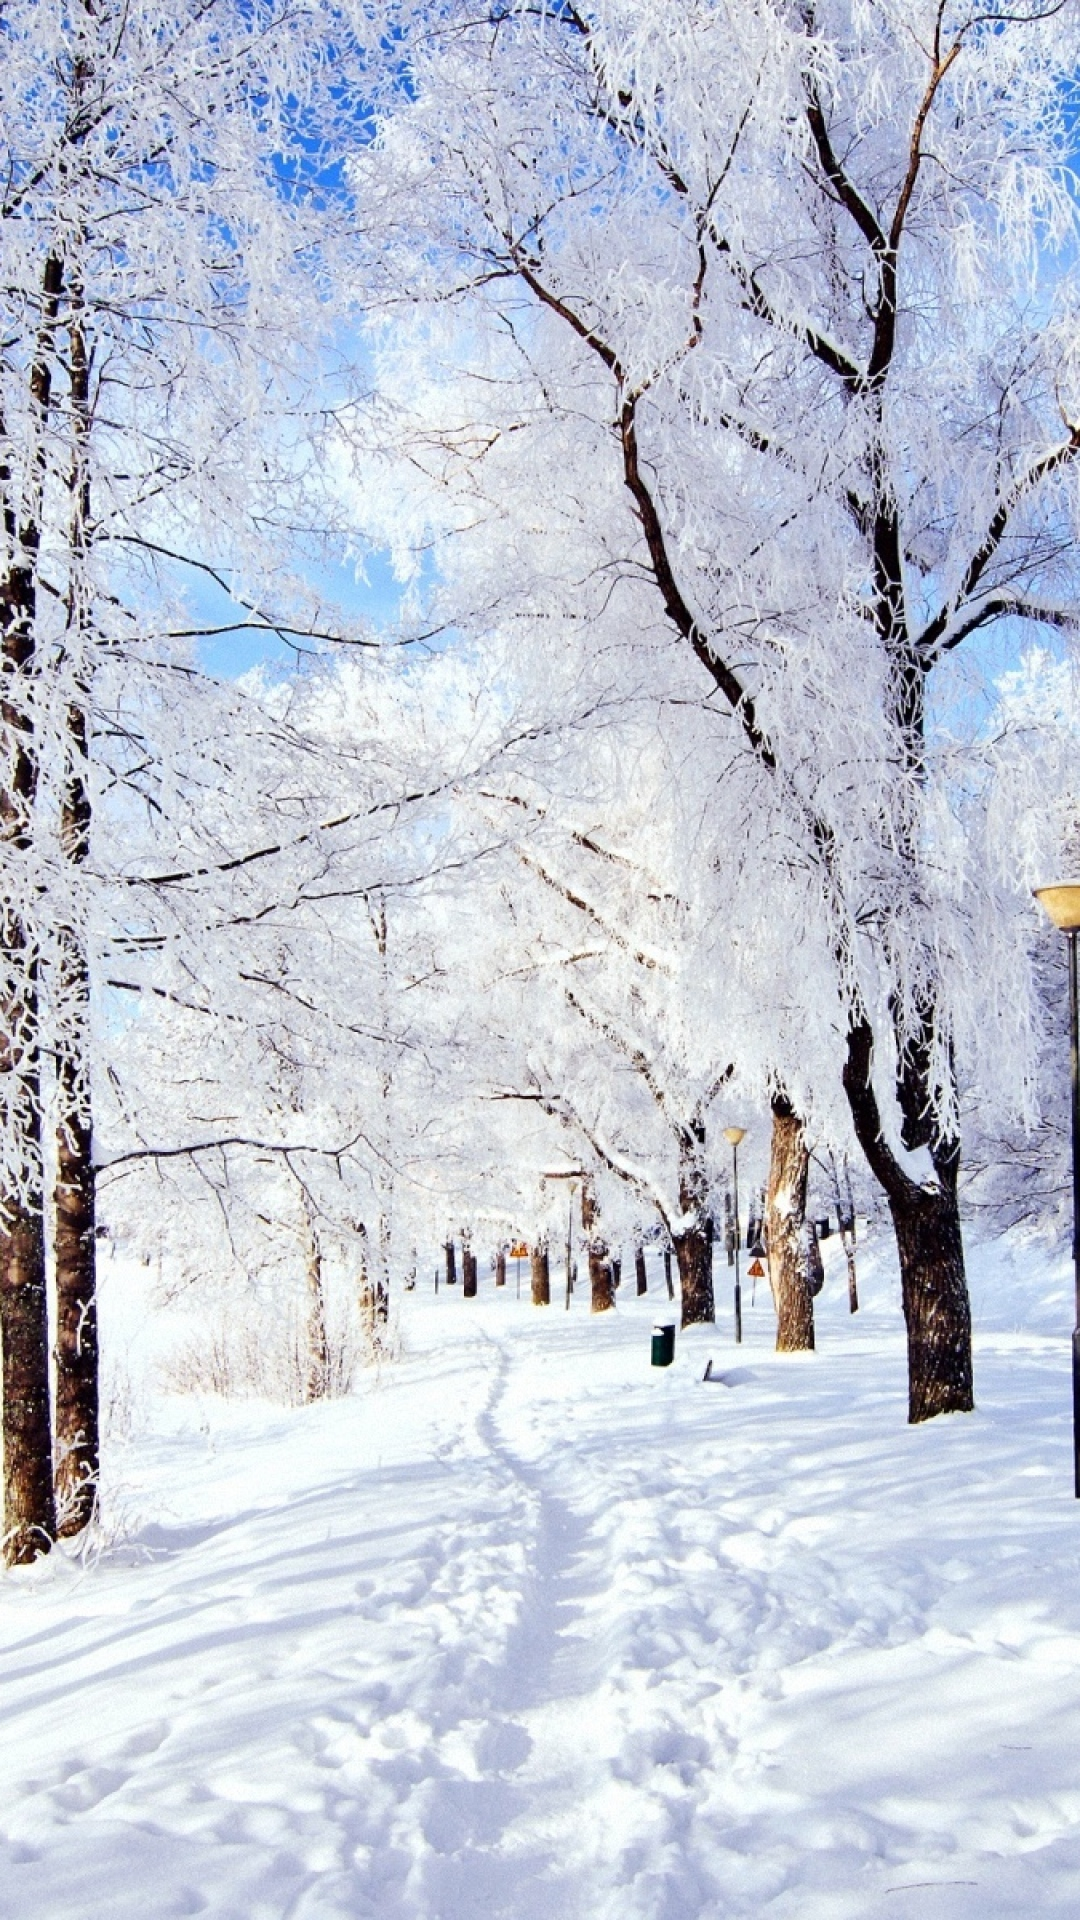 trail-trees-snow-frost-day-winter-wallpaper-wpc90010055